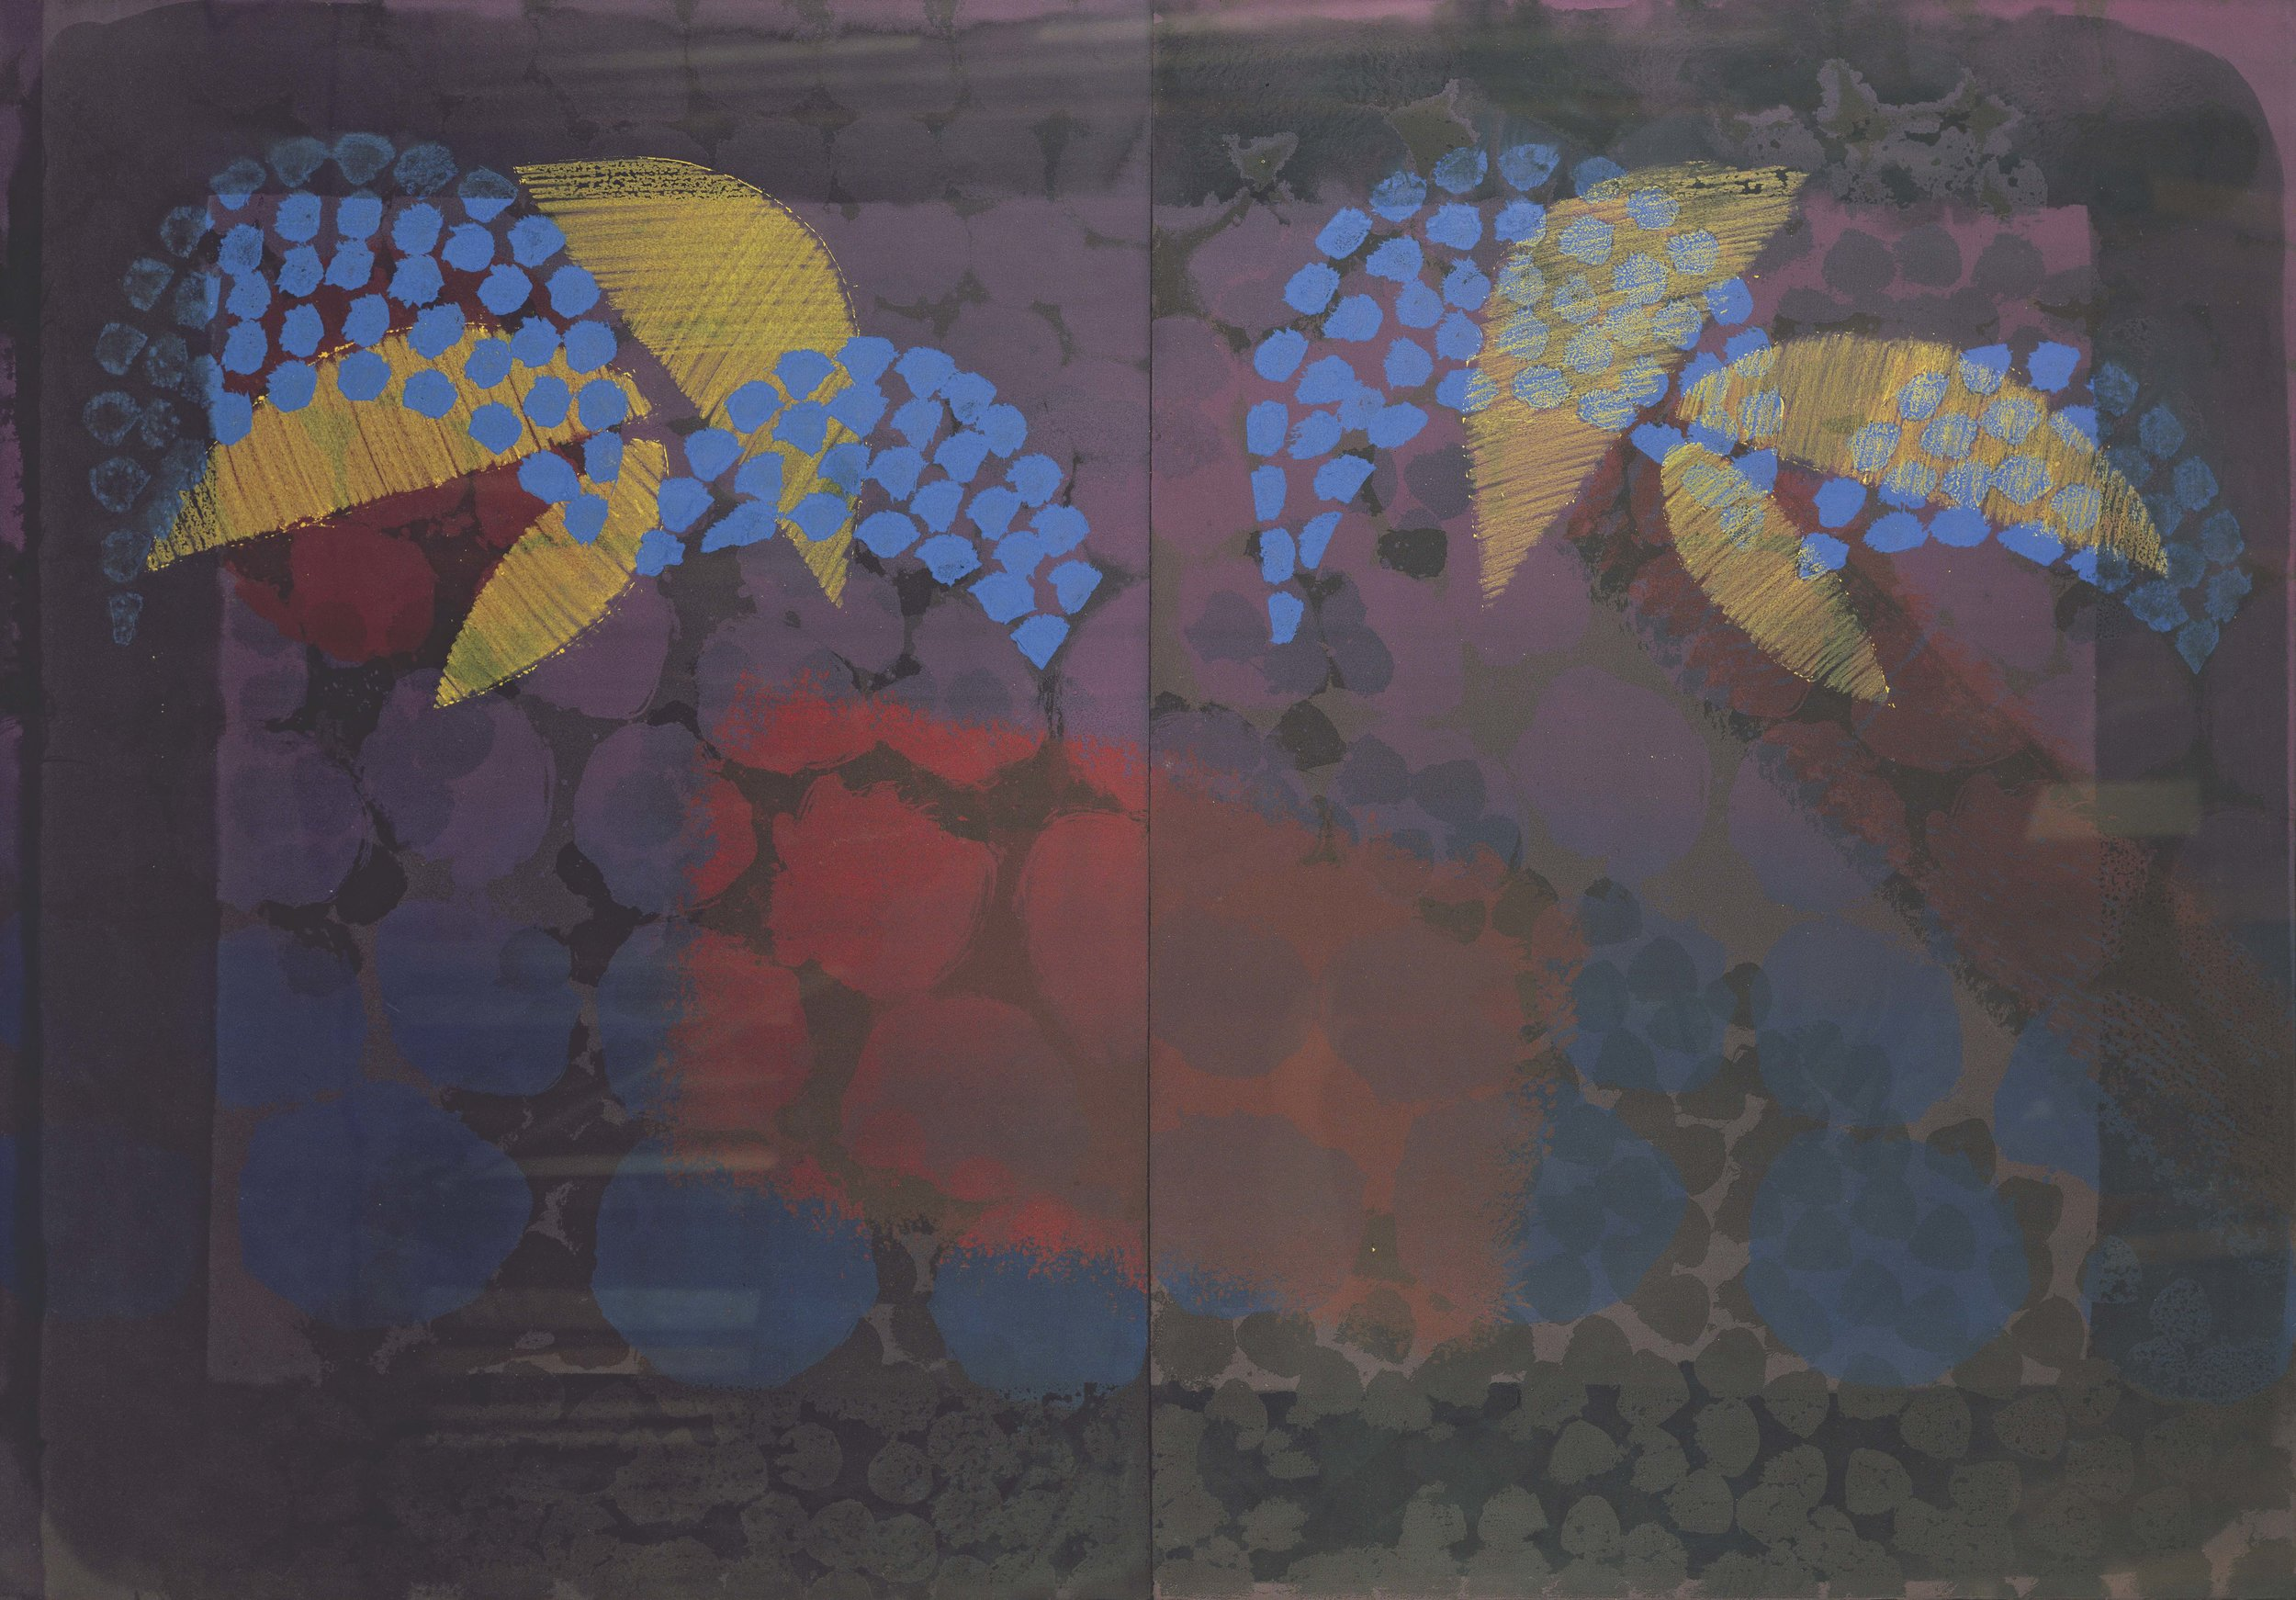 Howard Hodgkin, for bernard jacobson, 1979, Lithograph with hand colouring, Edition of 80, 105 x 149.9 cms (41 1/3 x 59 ins)